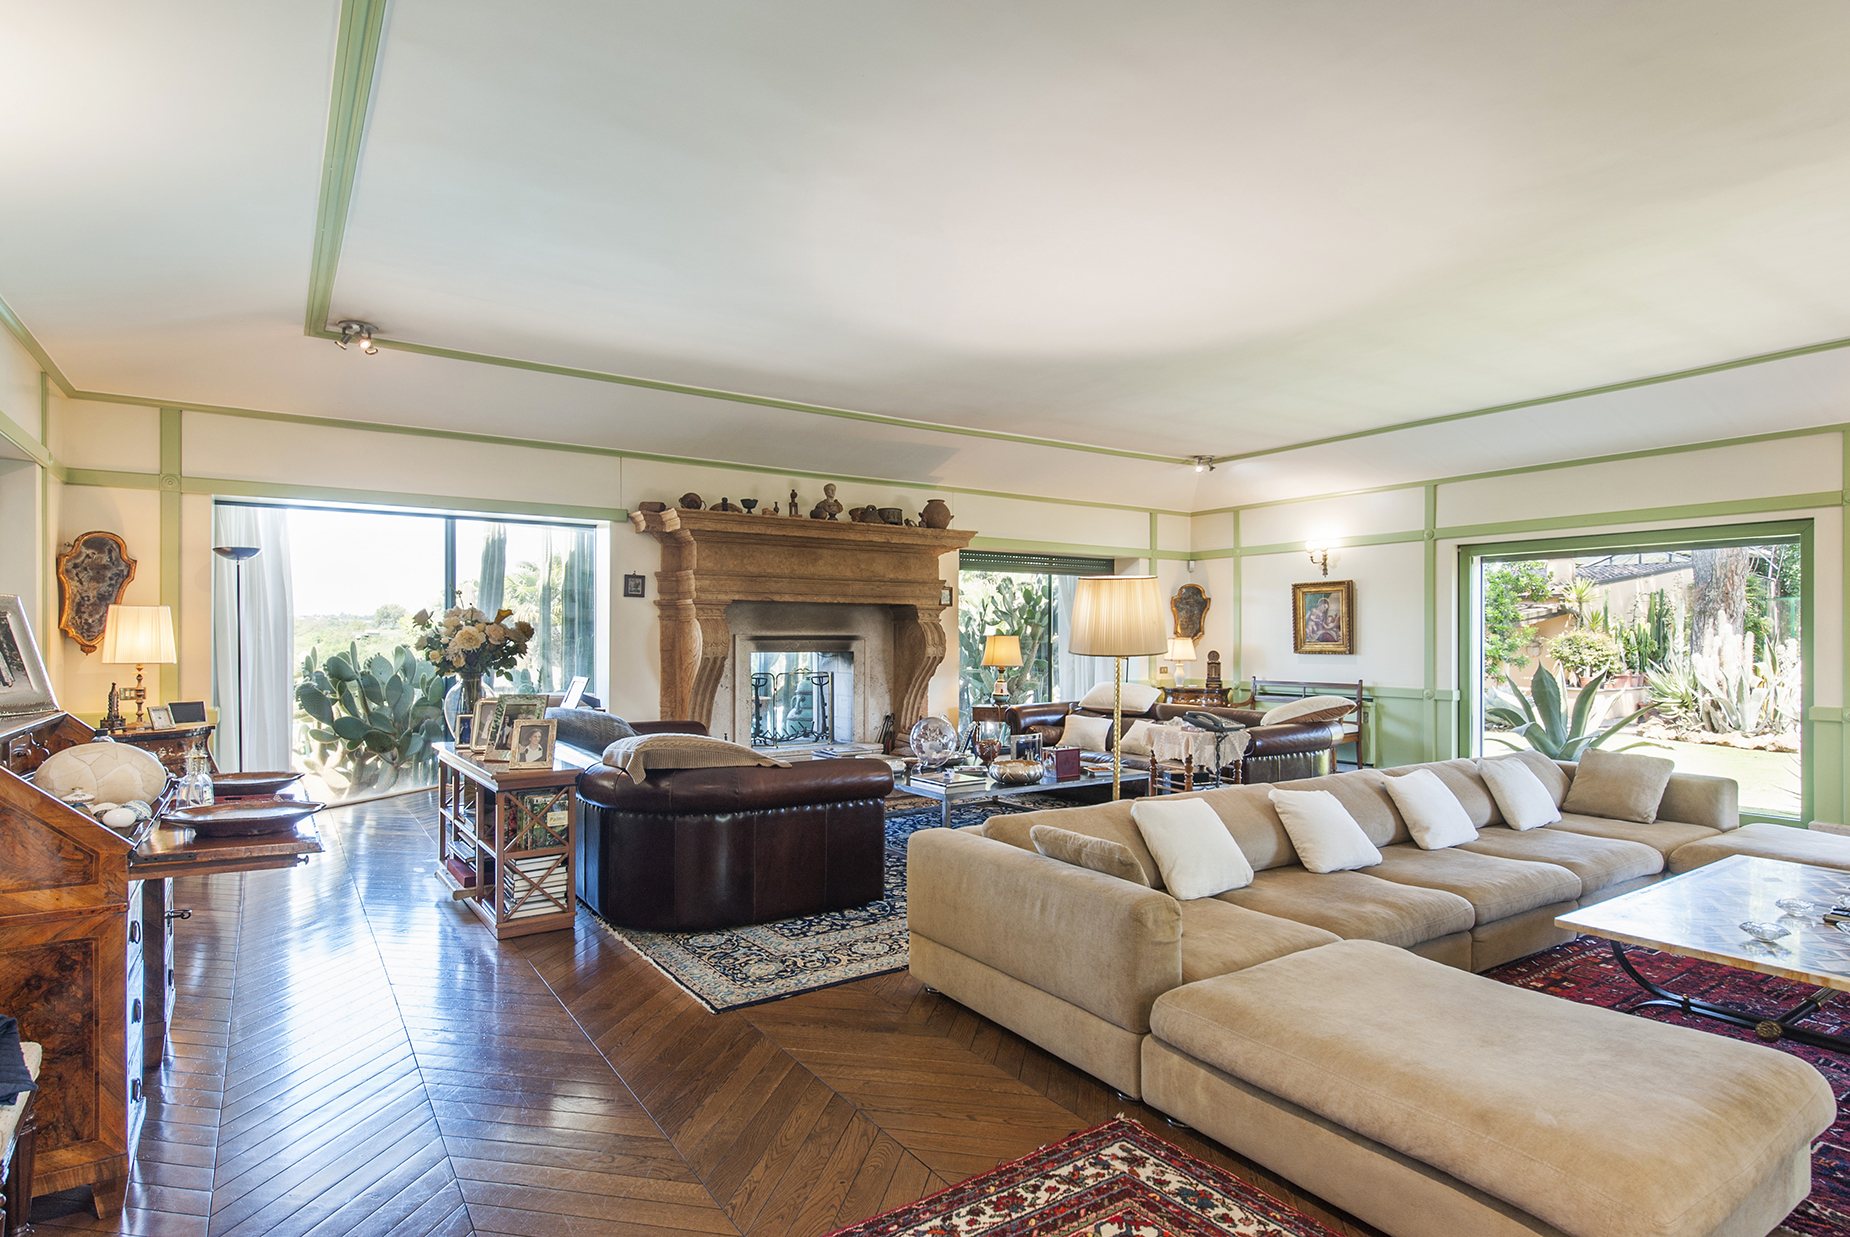 Single Family Home for Sale at Wonderful Villa with pool in the northern site of the city Via di Valle Vescovo Rome, Rome 00189 Italy